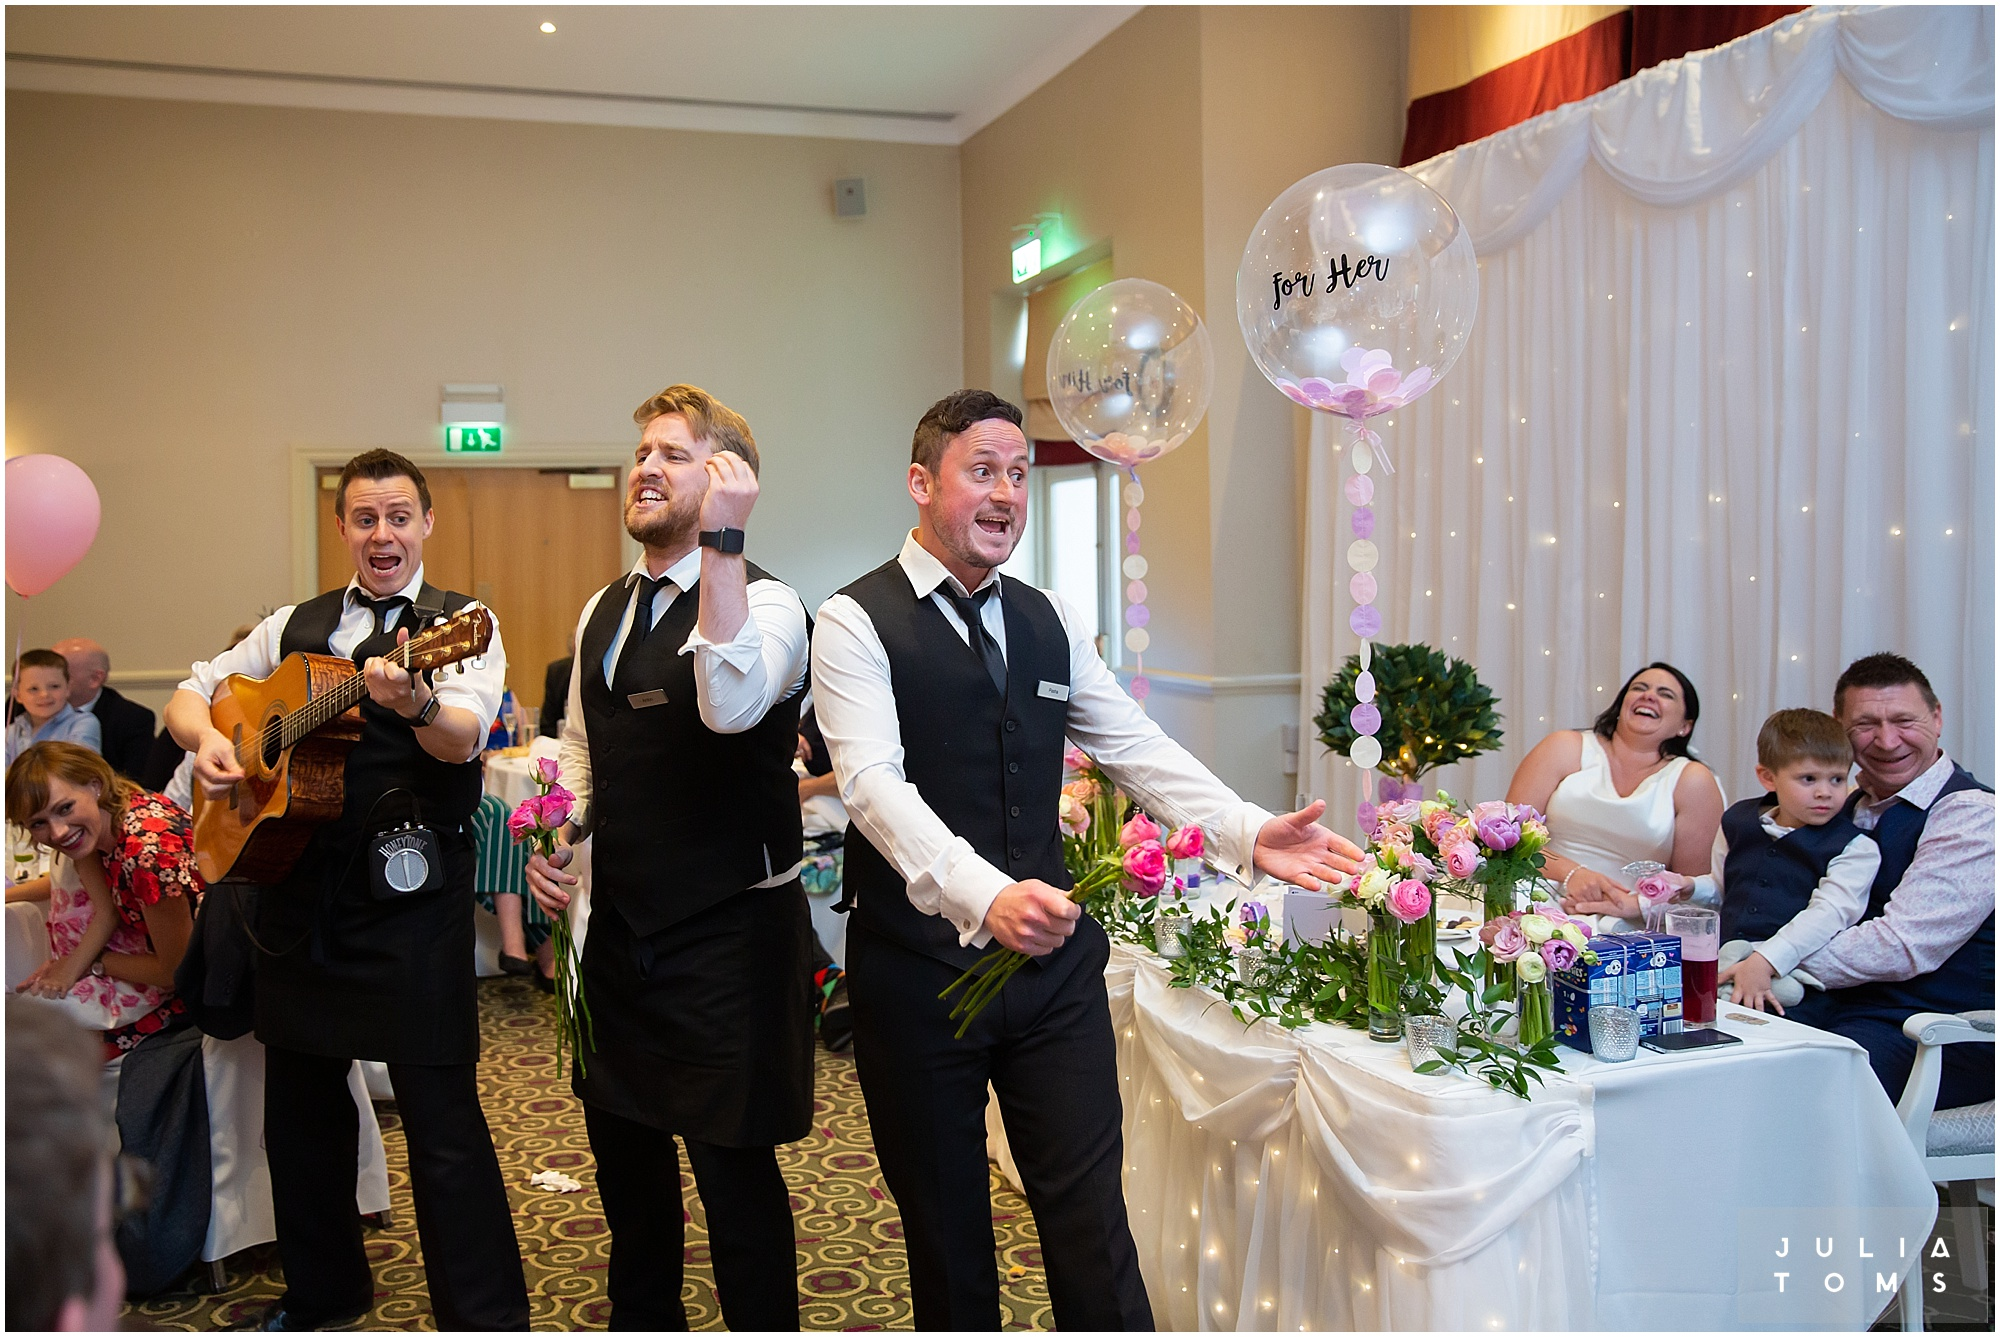 hampshire_wedding_photographer_juliatoms_091.jpg